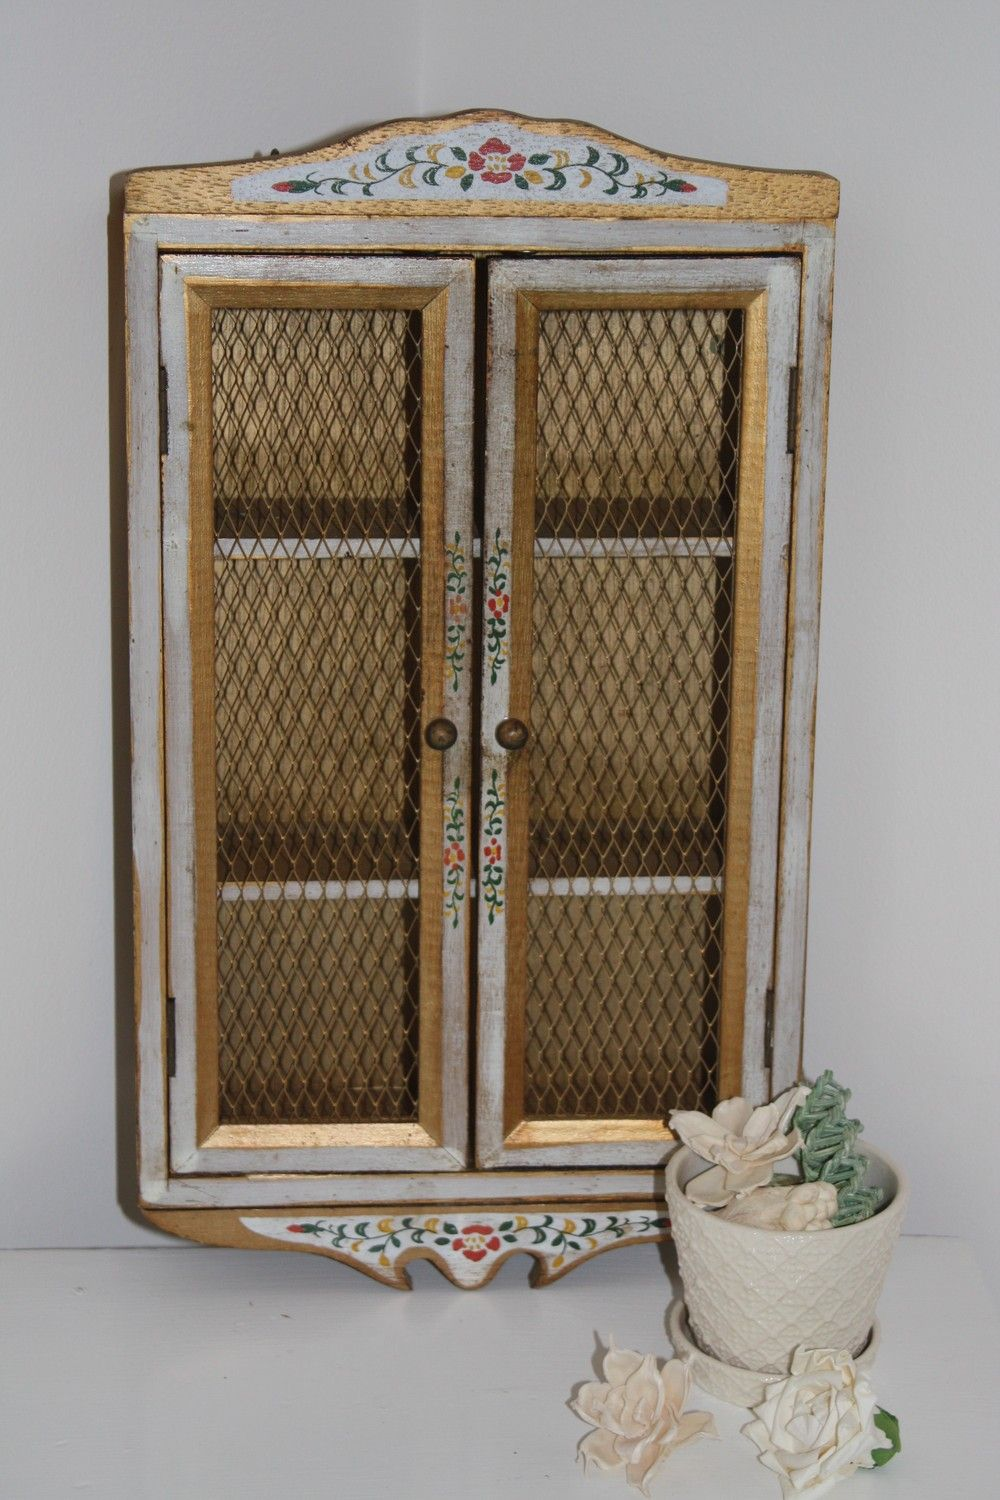 Vintage Cabinets | Like This Item?